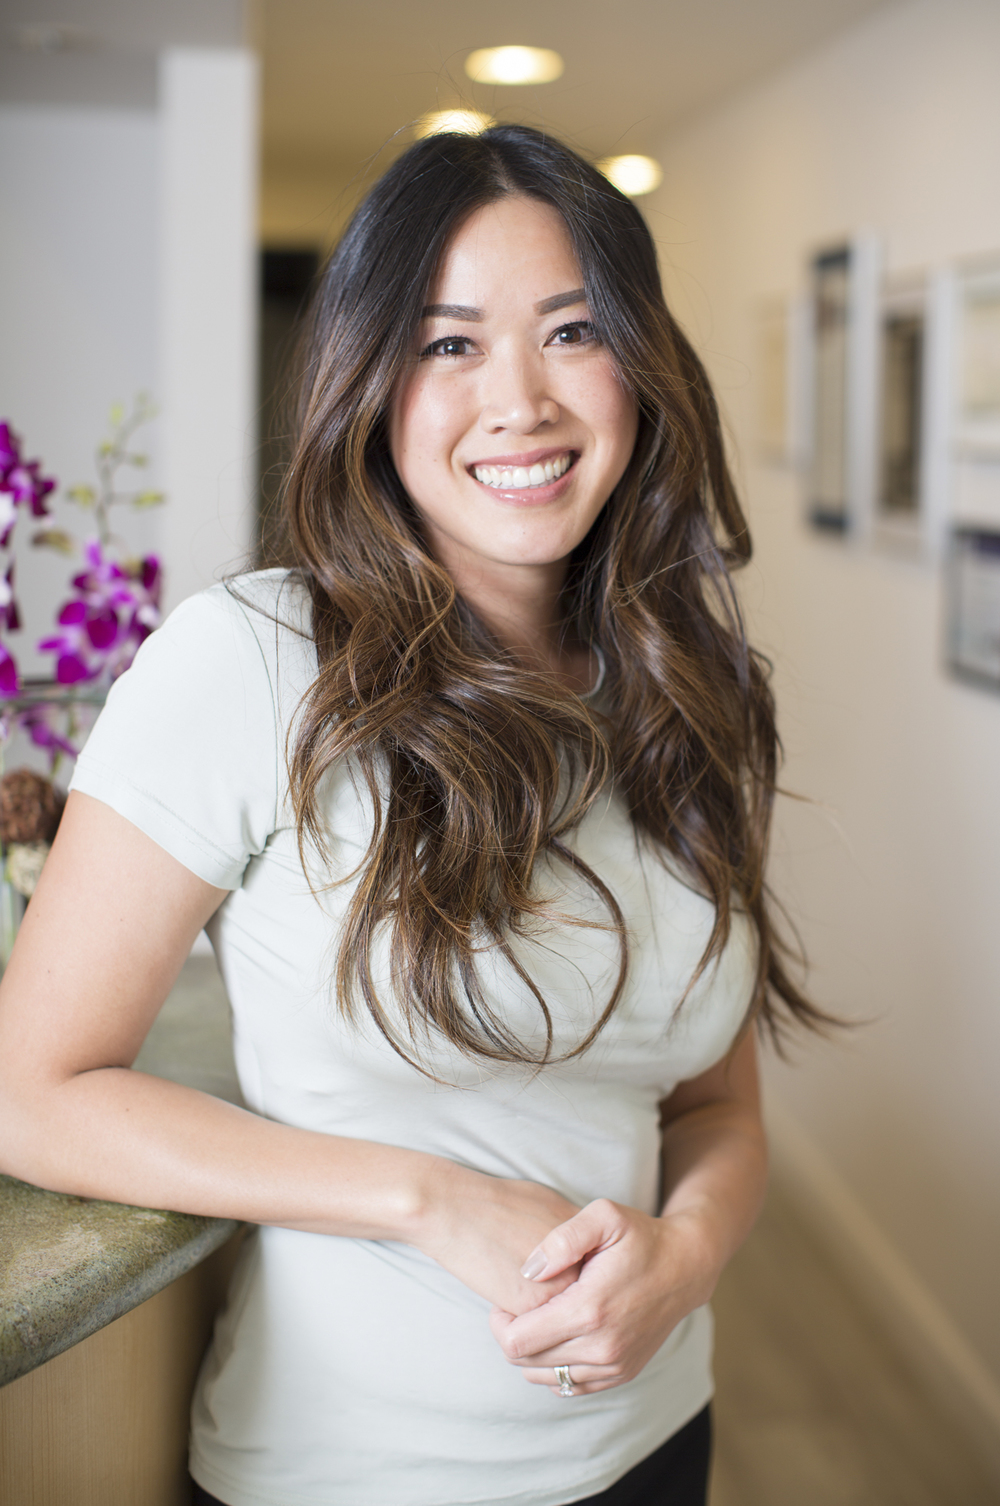 Han Nguyen, Practice Administrator, and Registered Dental Hygienist at Nice Teeth Dental in San Leandro, California.